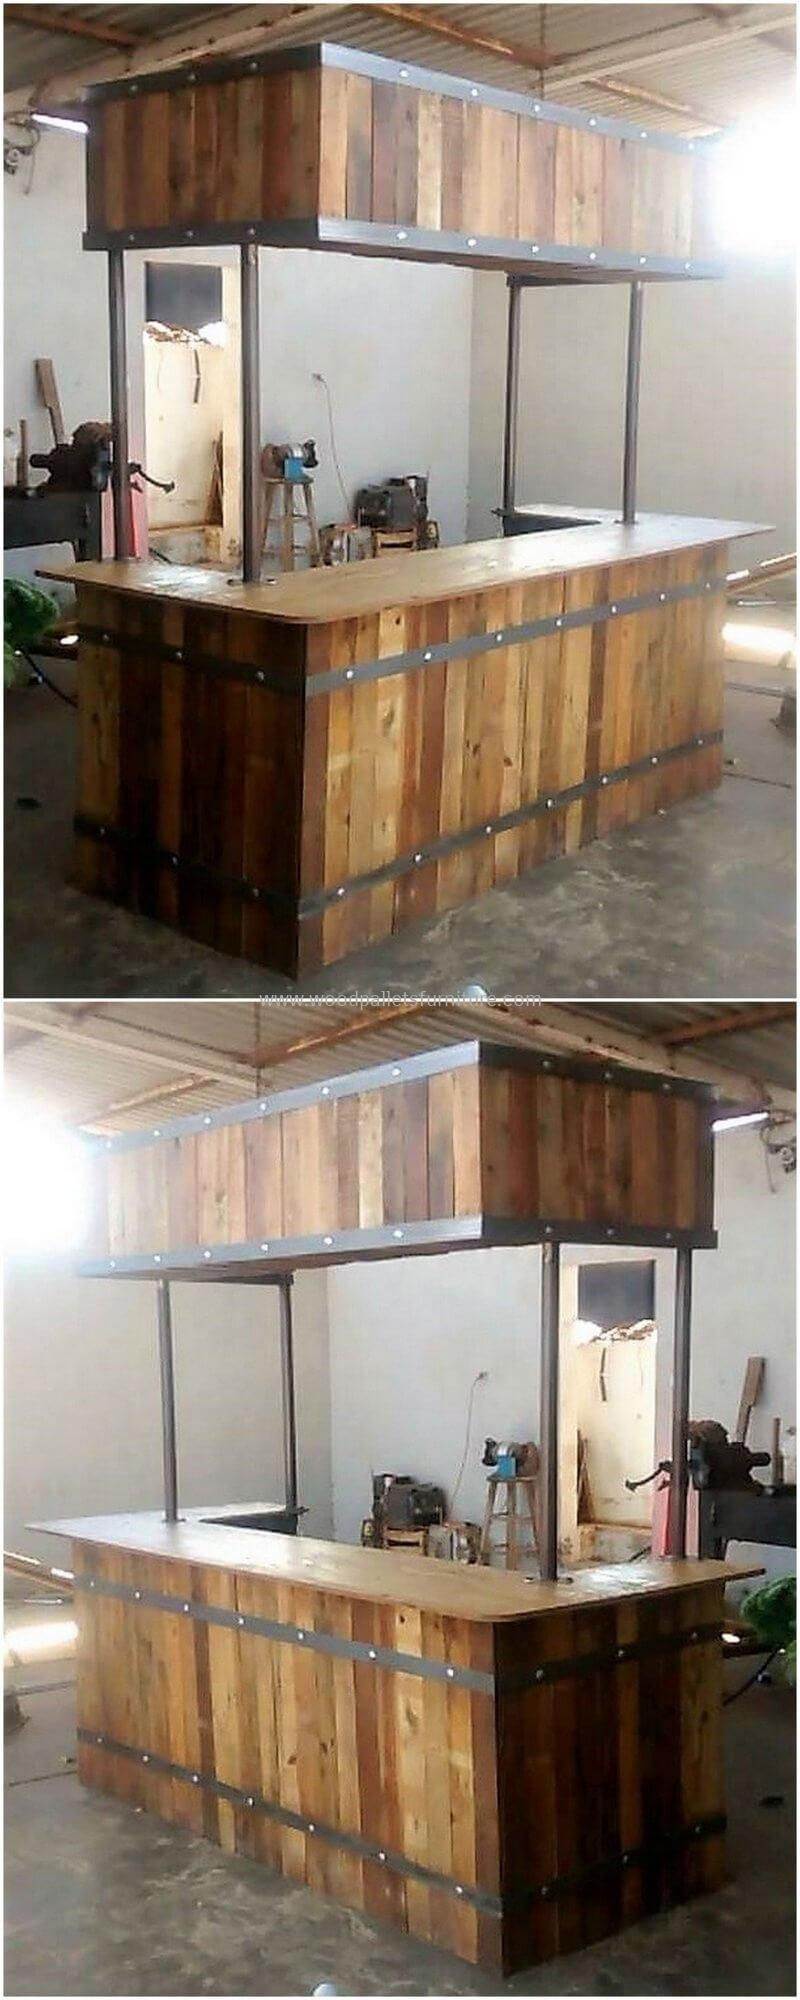 200 Diy Ideas For Wood Pallet Bars Kitchen Bar Design